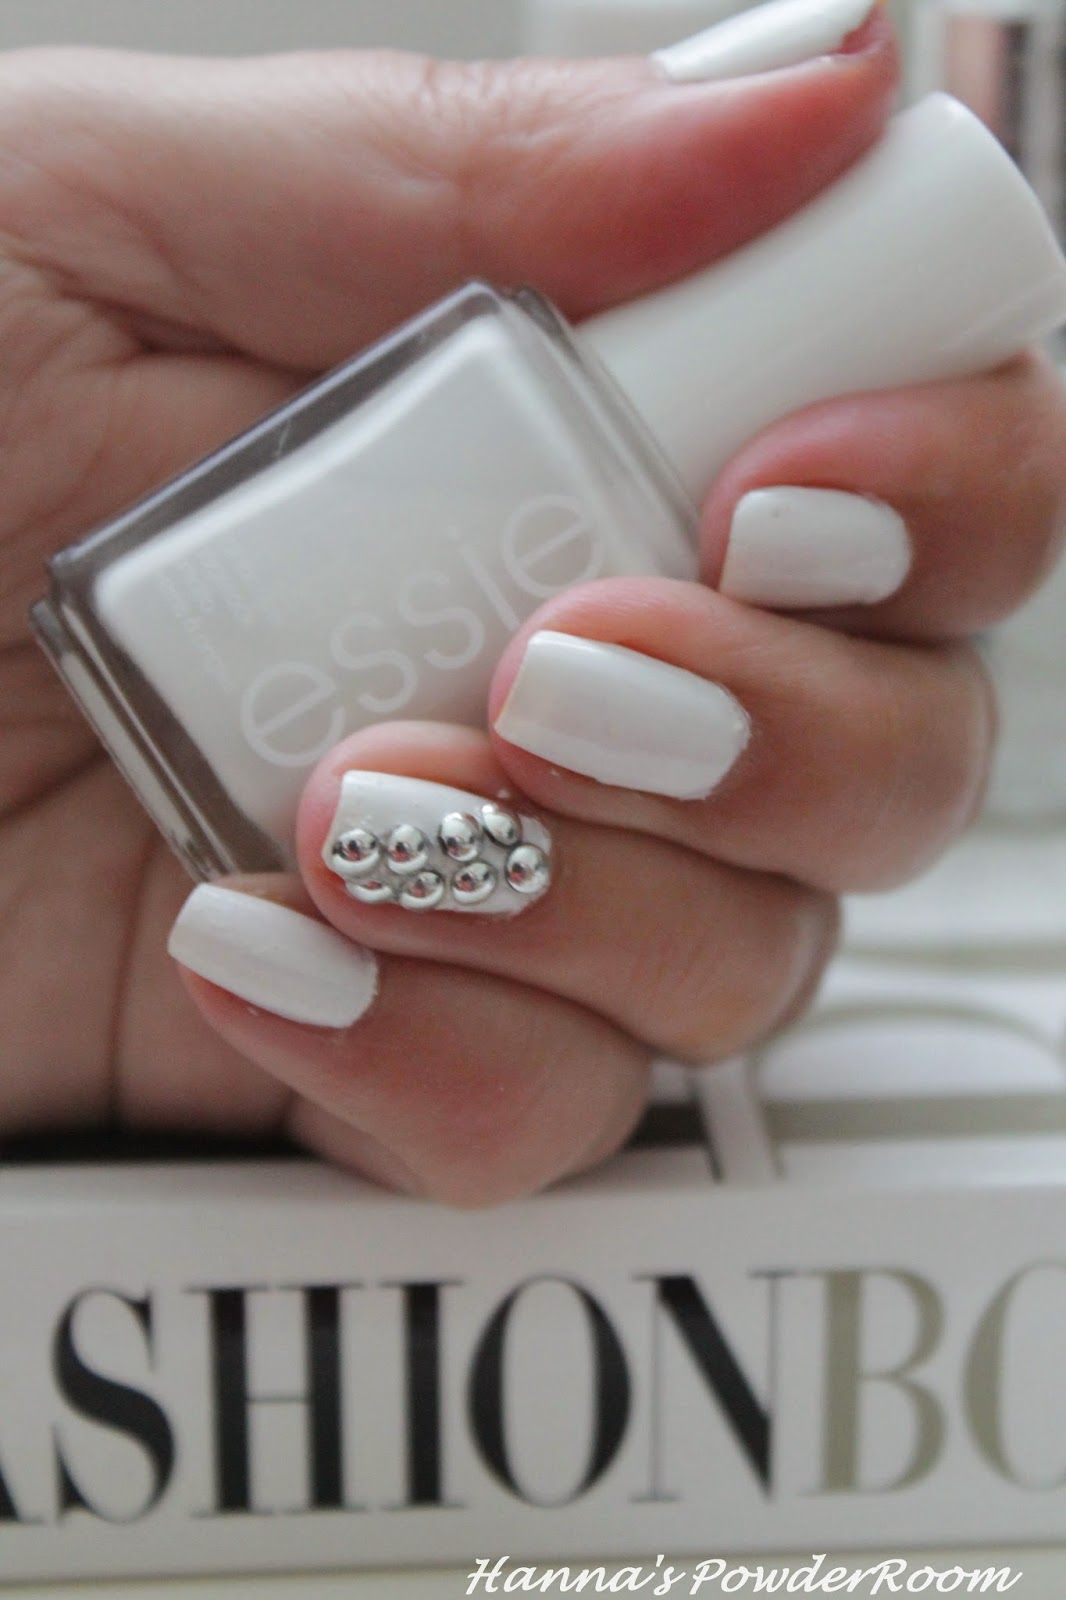 Essie Blanc Stud nails Hanna's PowderRoom Blog